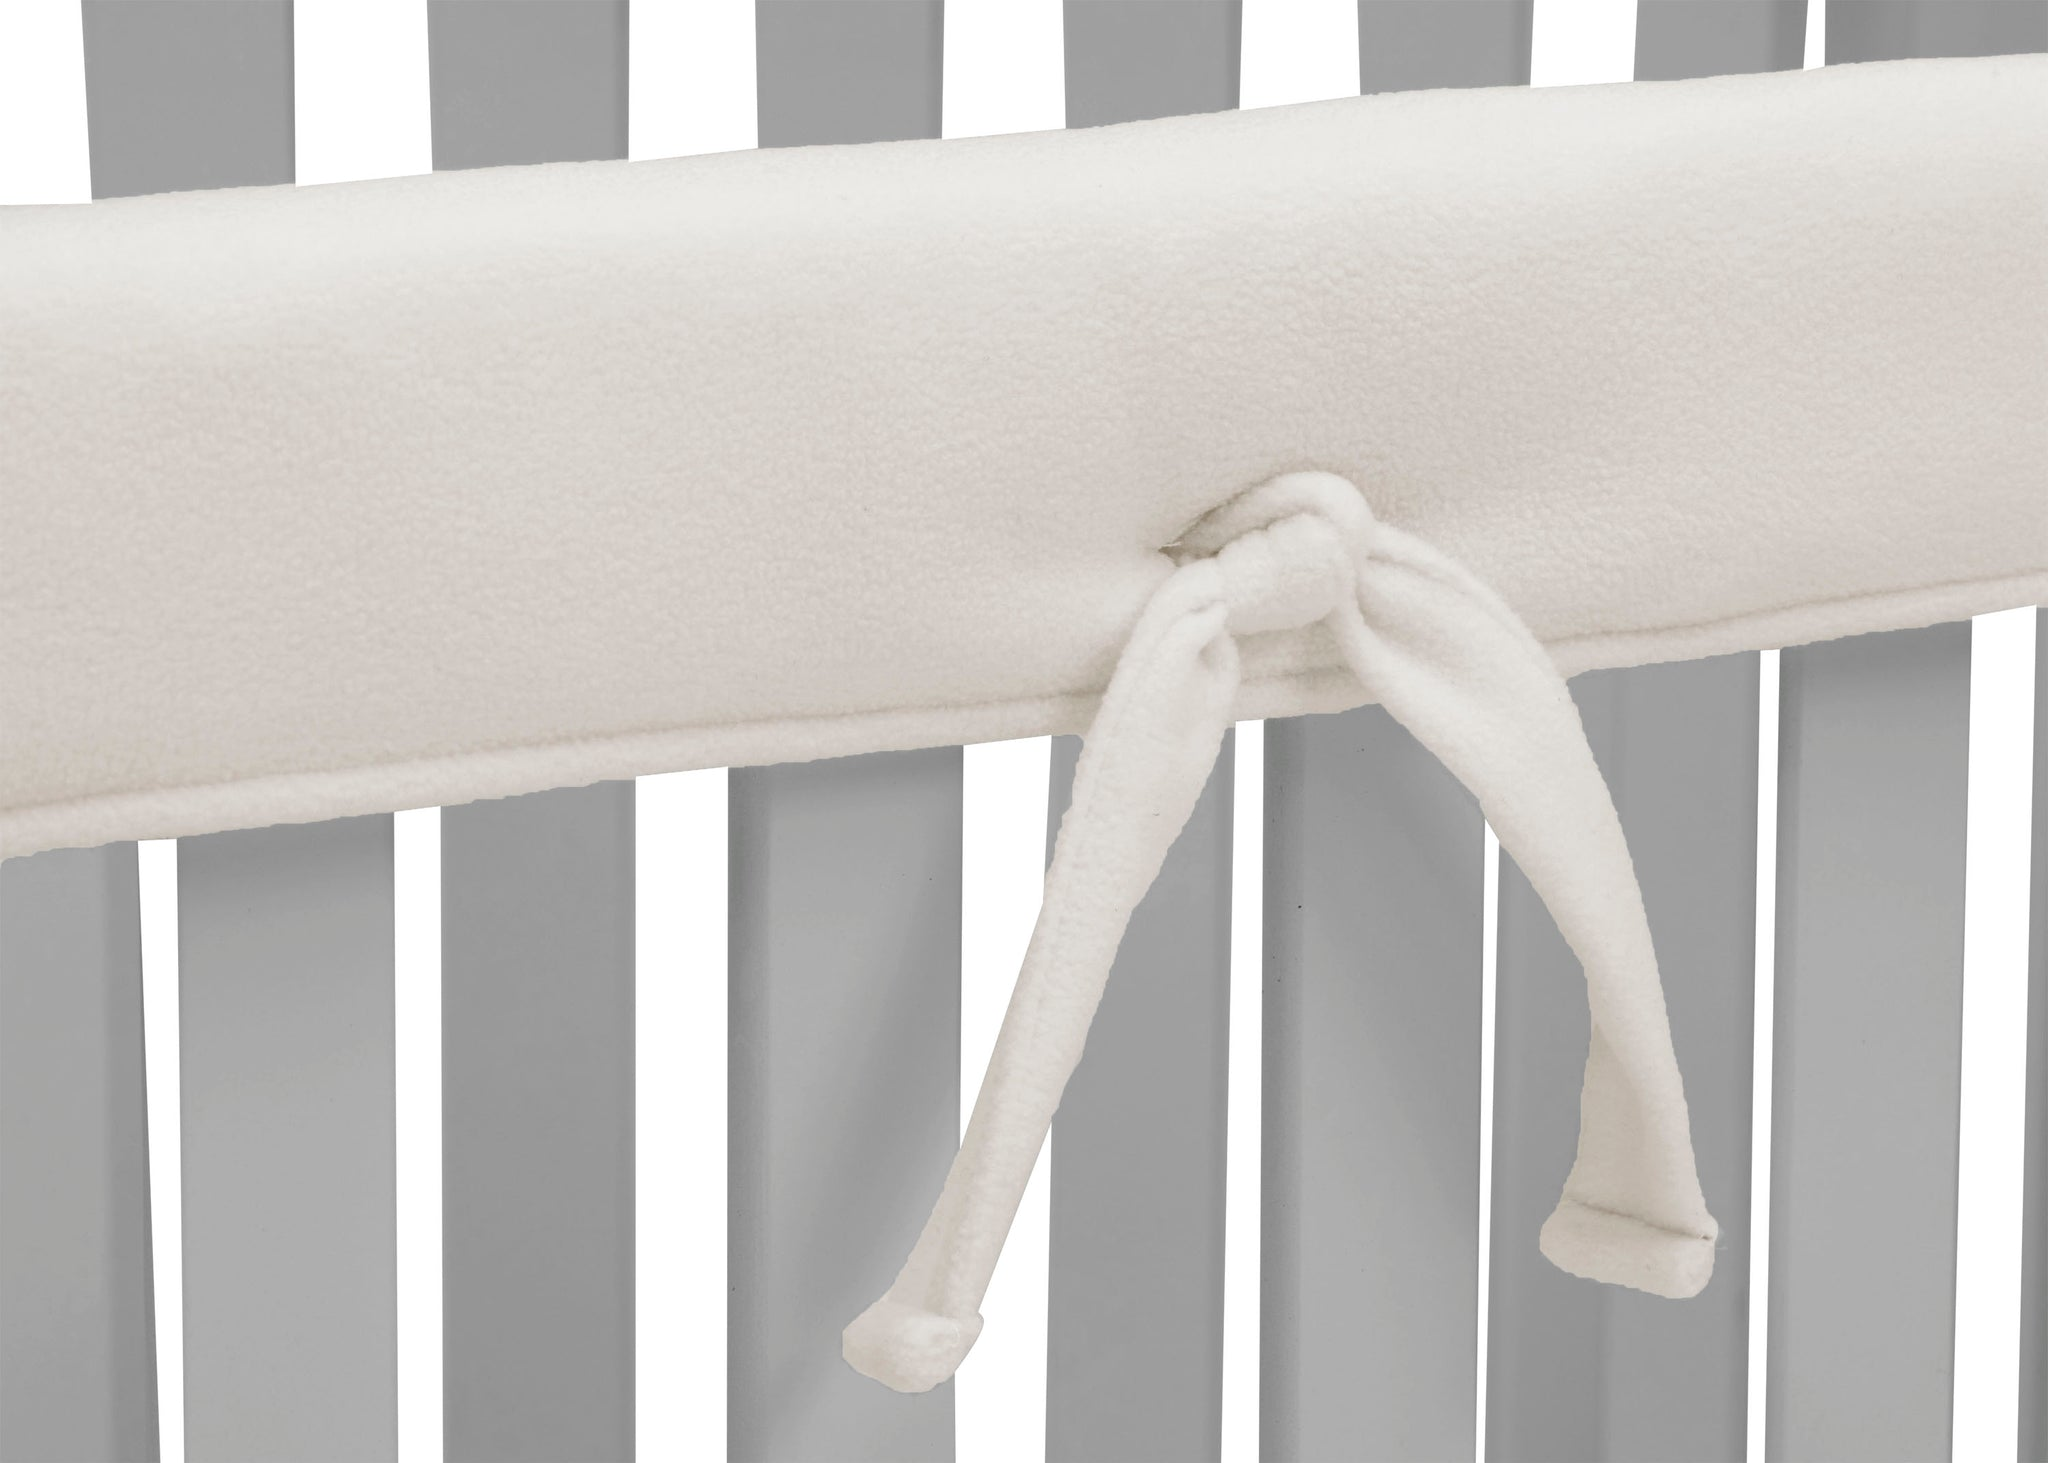 Delta Children Ivory (124) Waterproof Fleece Crib Rail Covers/Protectors for Short Side Rails, 2 Pack, Tie Detail View